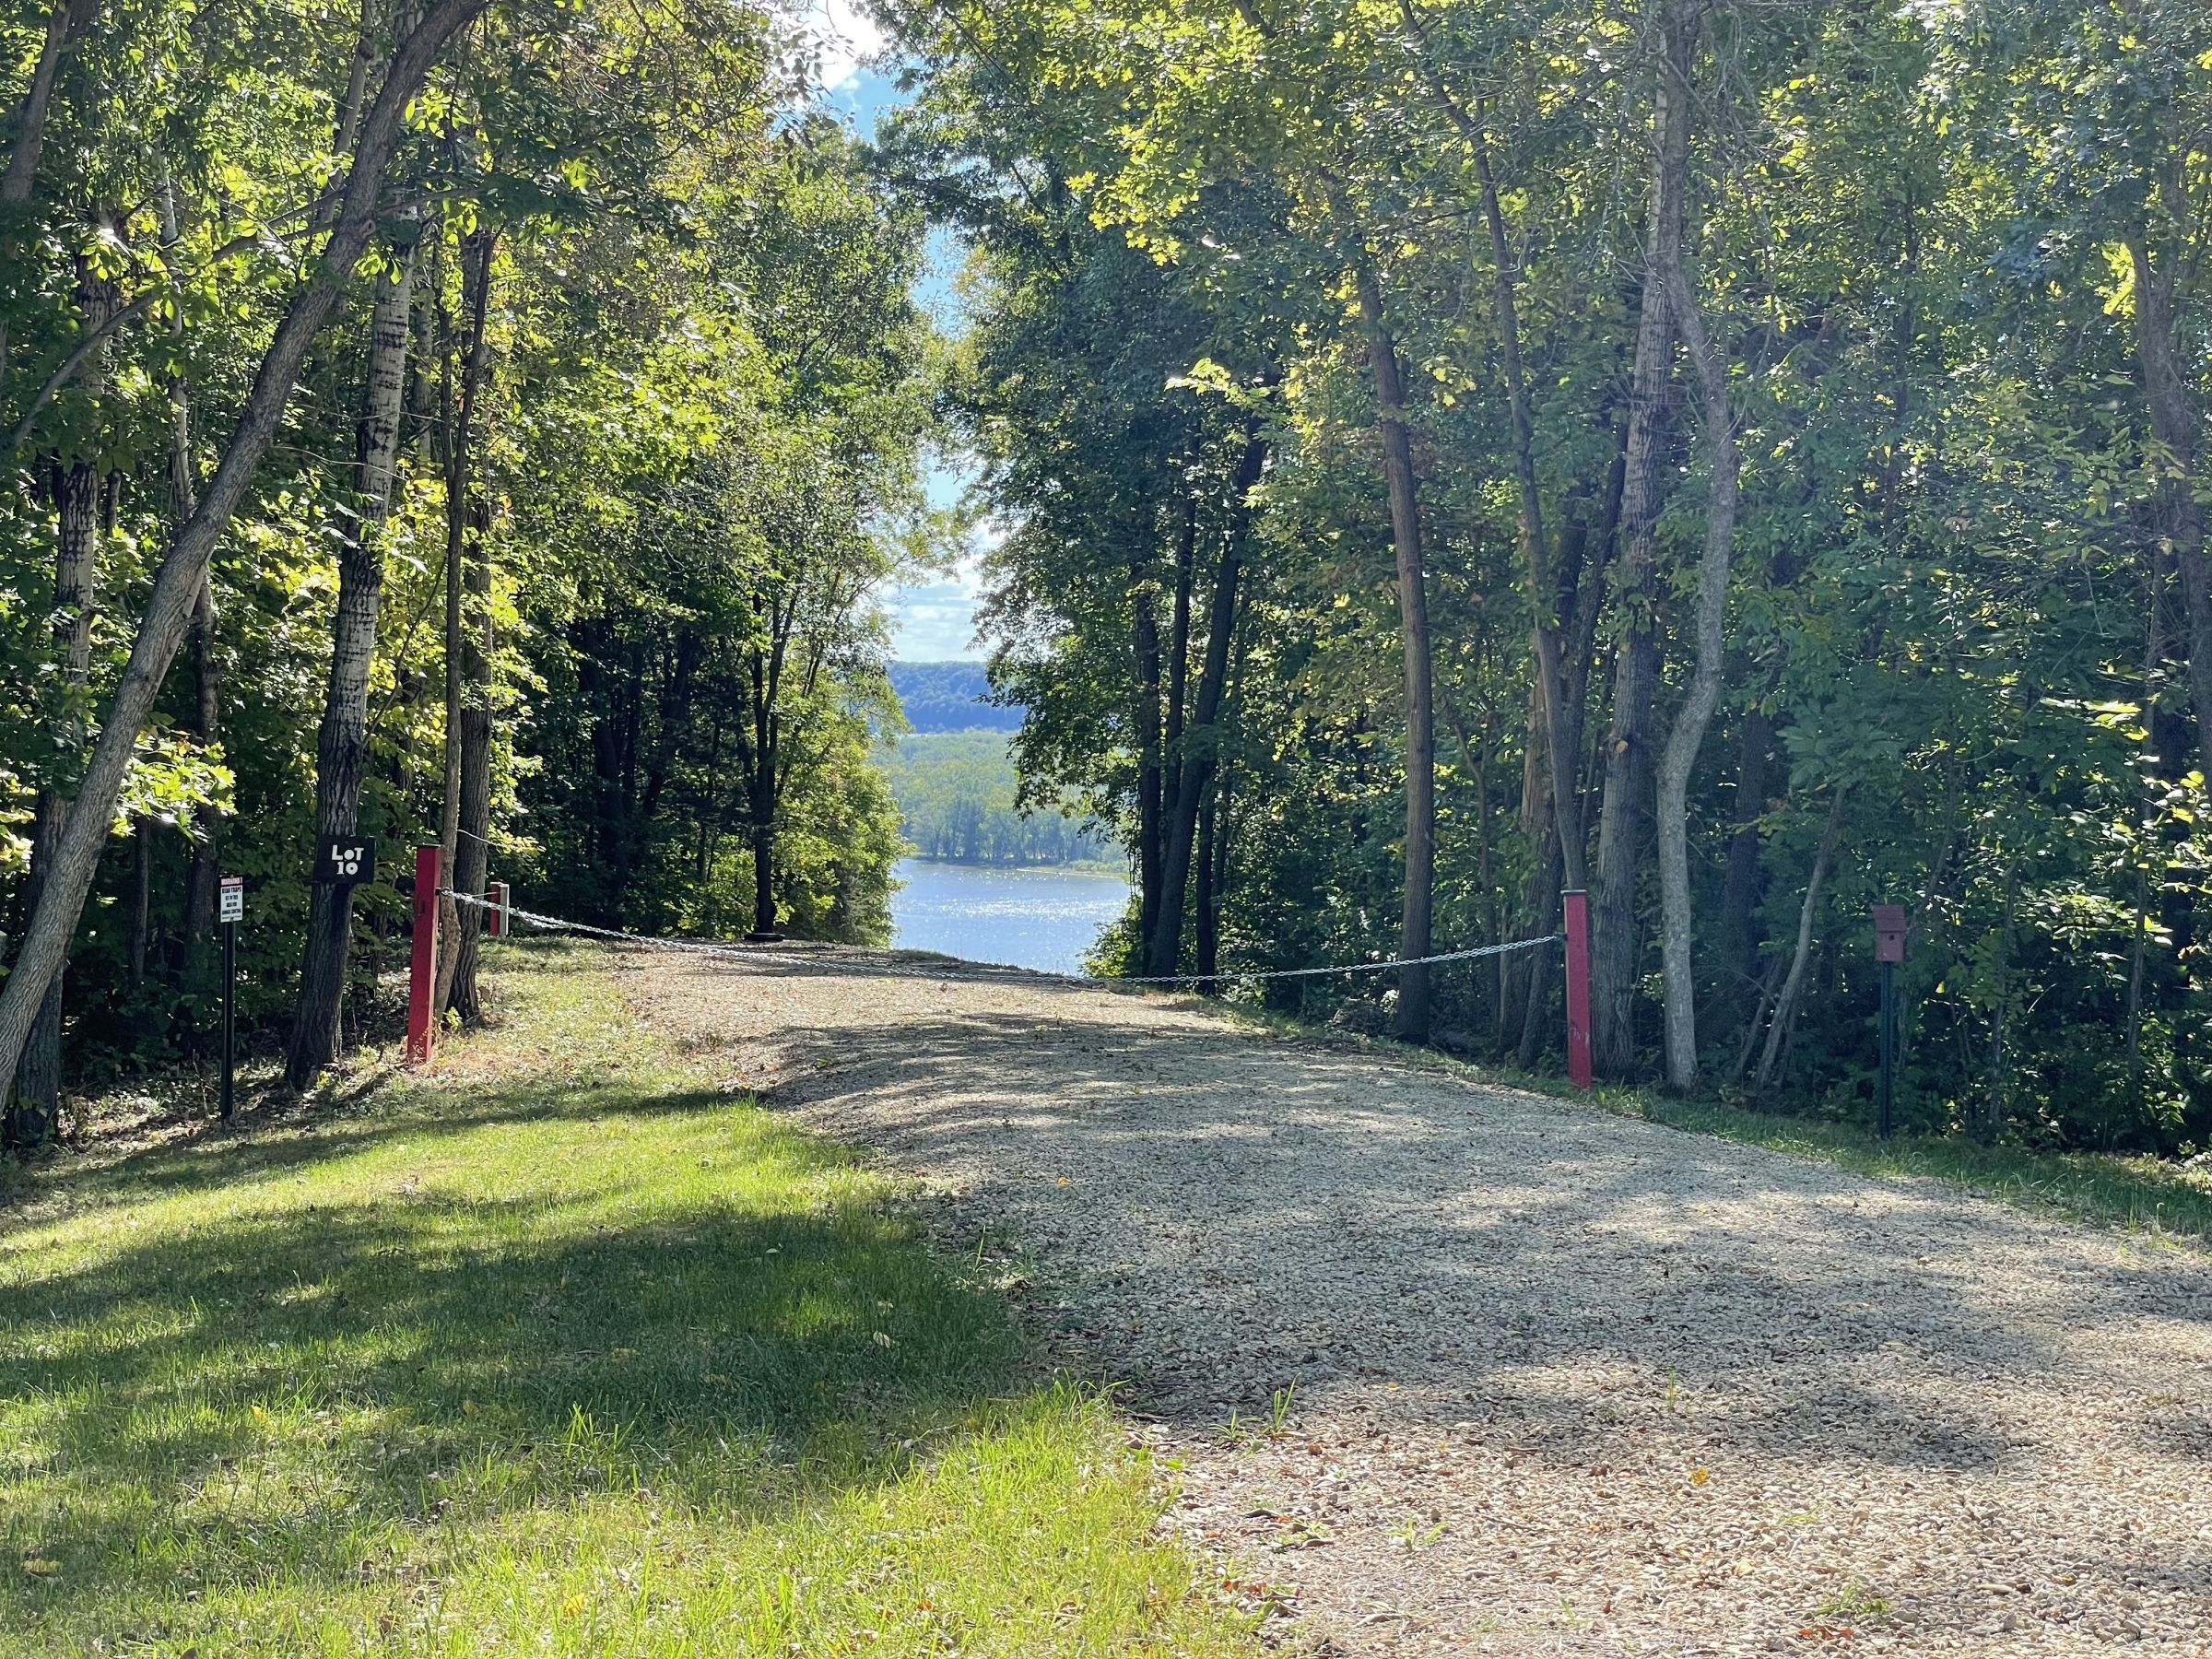 land-grant-county-wisconsin-4-acres-listing-number-15772-0-2021-09-23-020210.JPG